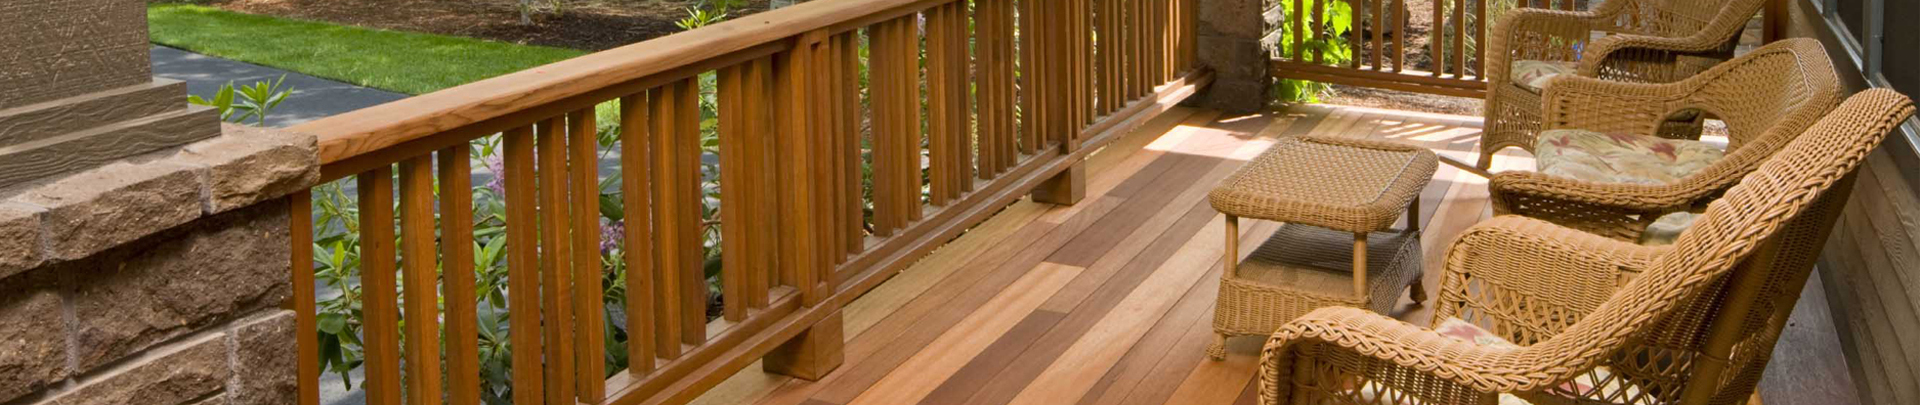 Decking & fence lumber